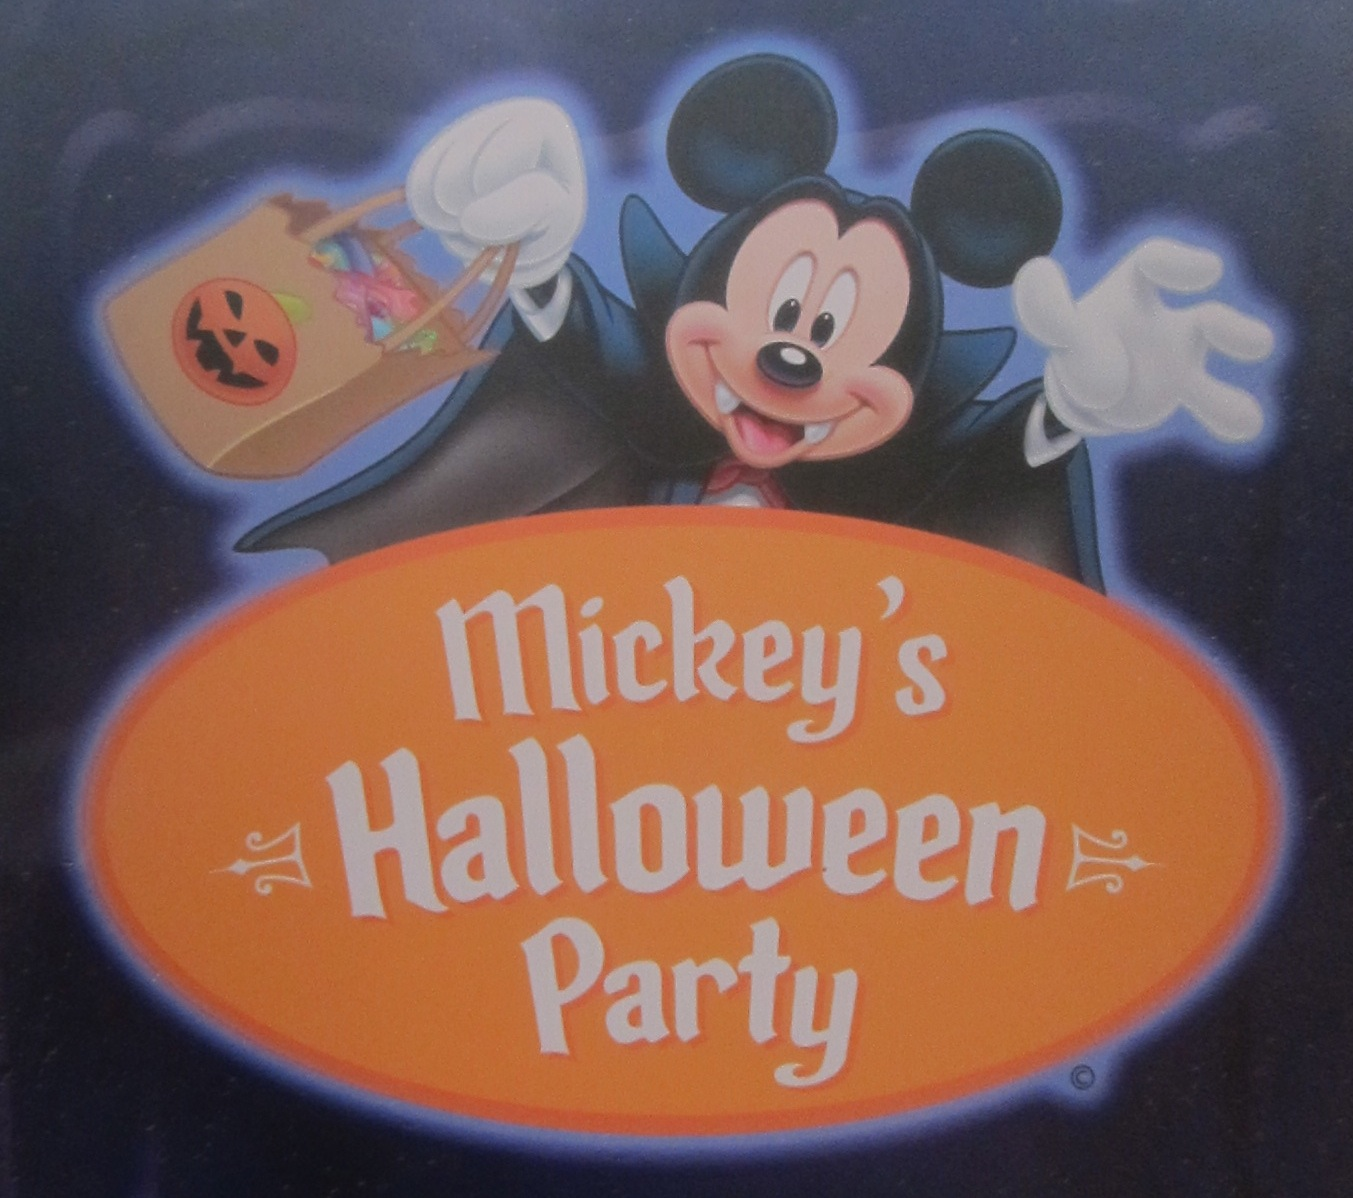 2013 Mickeys Halloween Party Dates Announced  Babes in - Date Halloween 2013